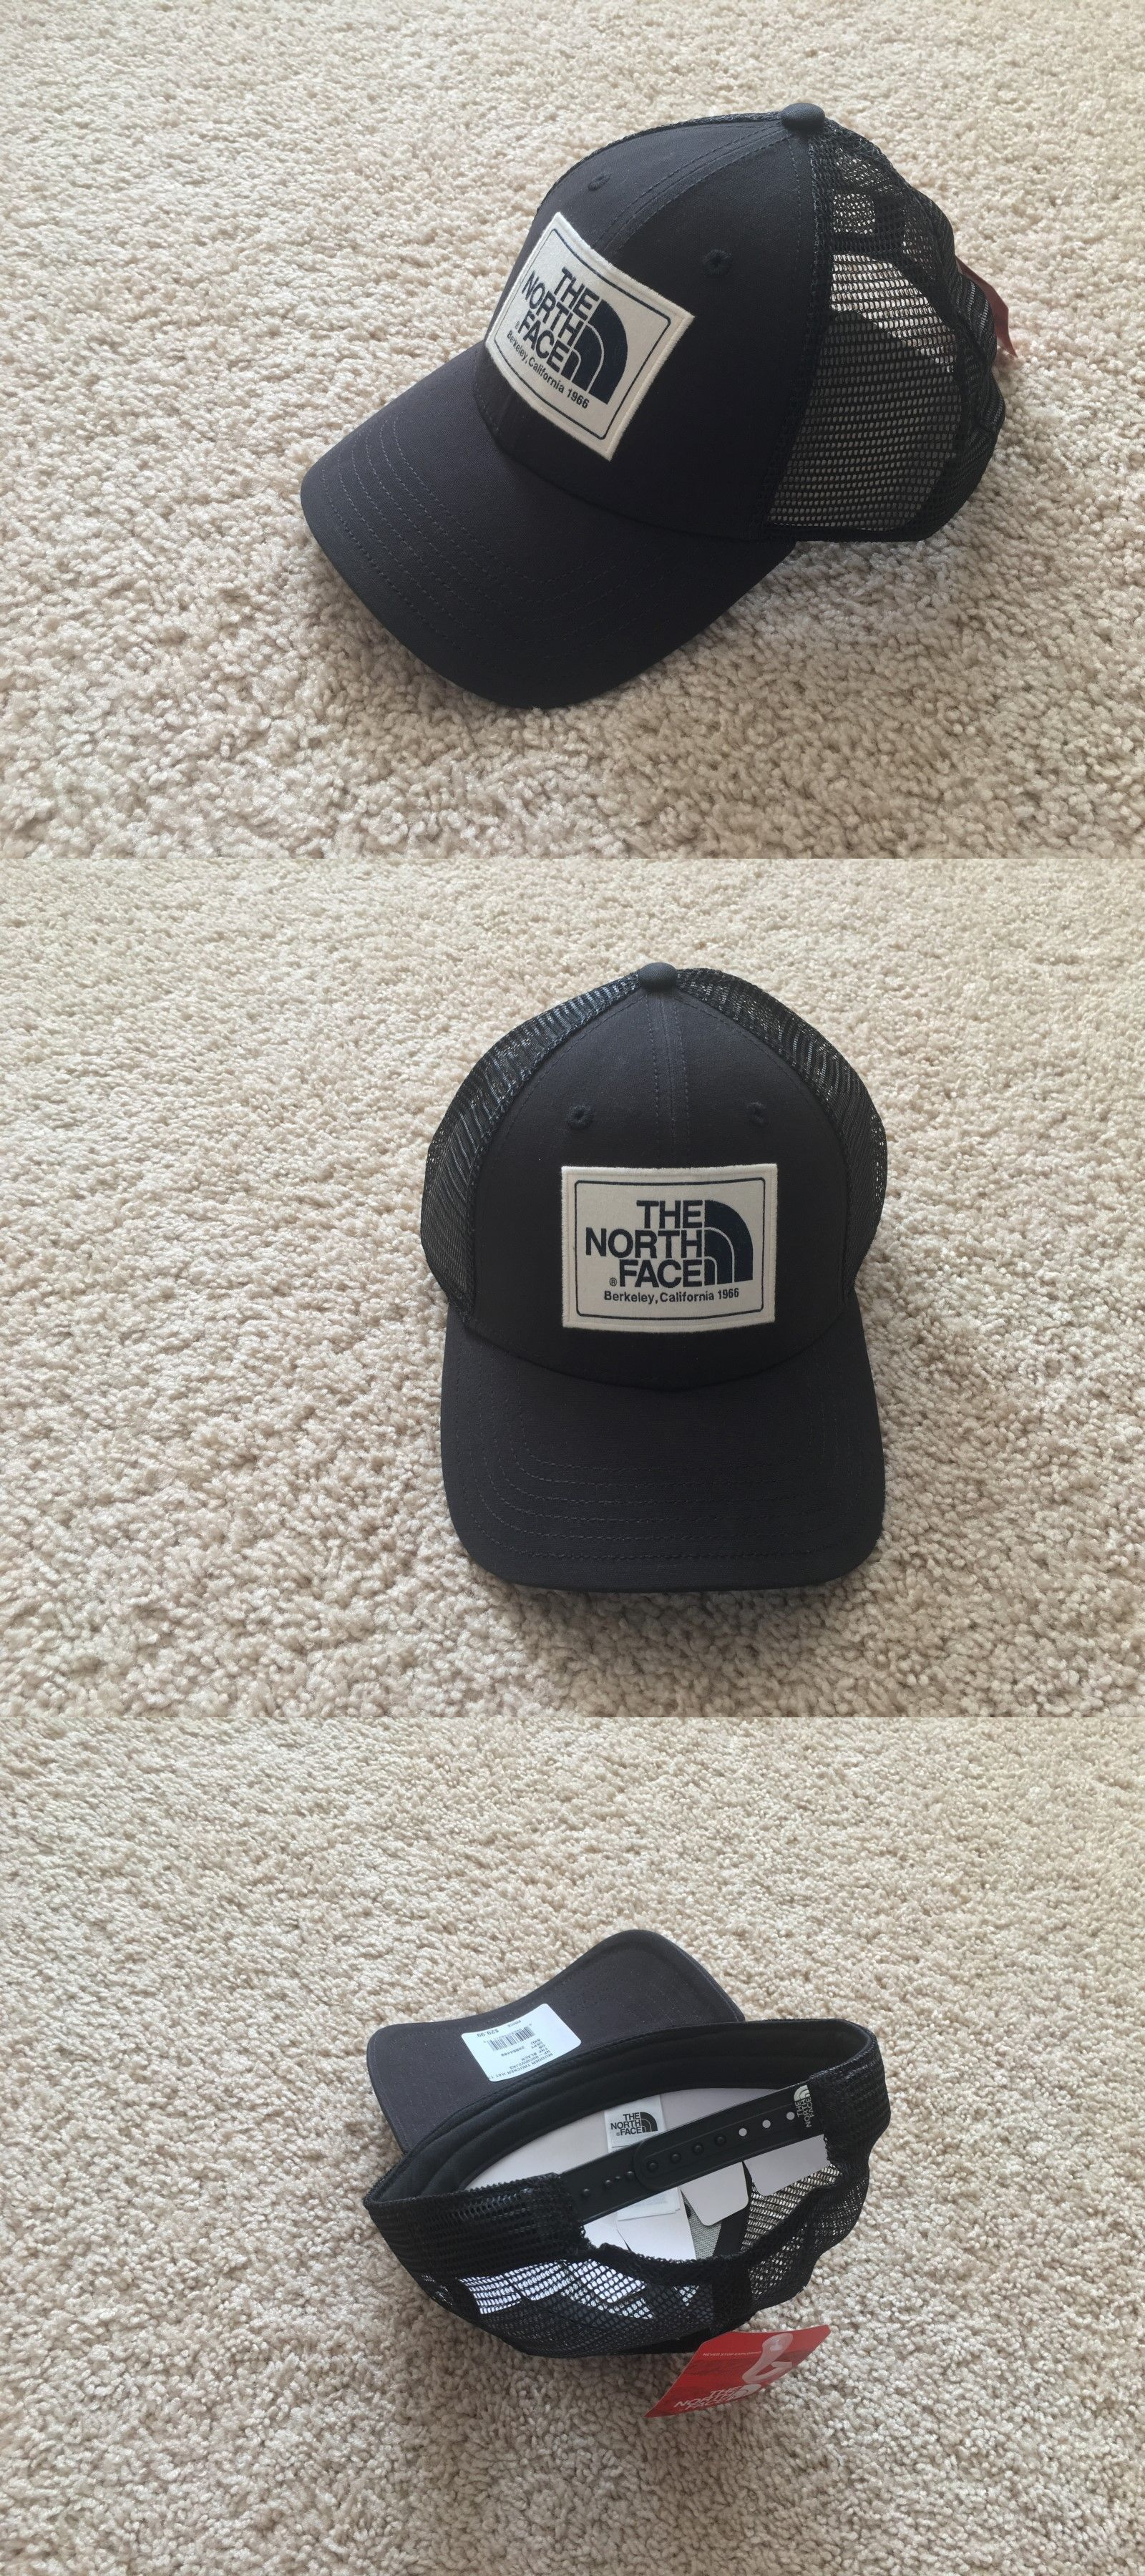 60cbfb120fea0e Hats 52365: New The North Face Mudder Trucker Mesh Snapback Cap Hat Men ->  BUY IT NOW ONLY: $19.95 on #eBay #north #mudder #trucker #snapback